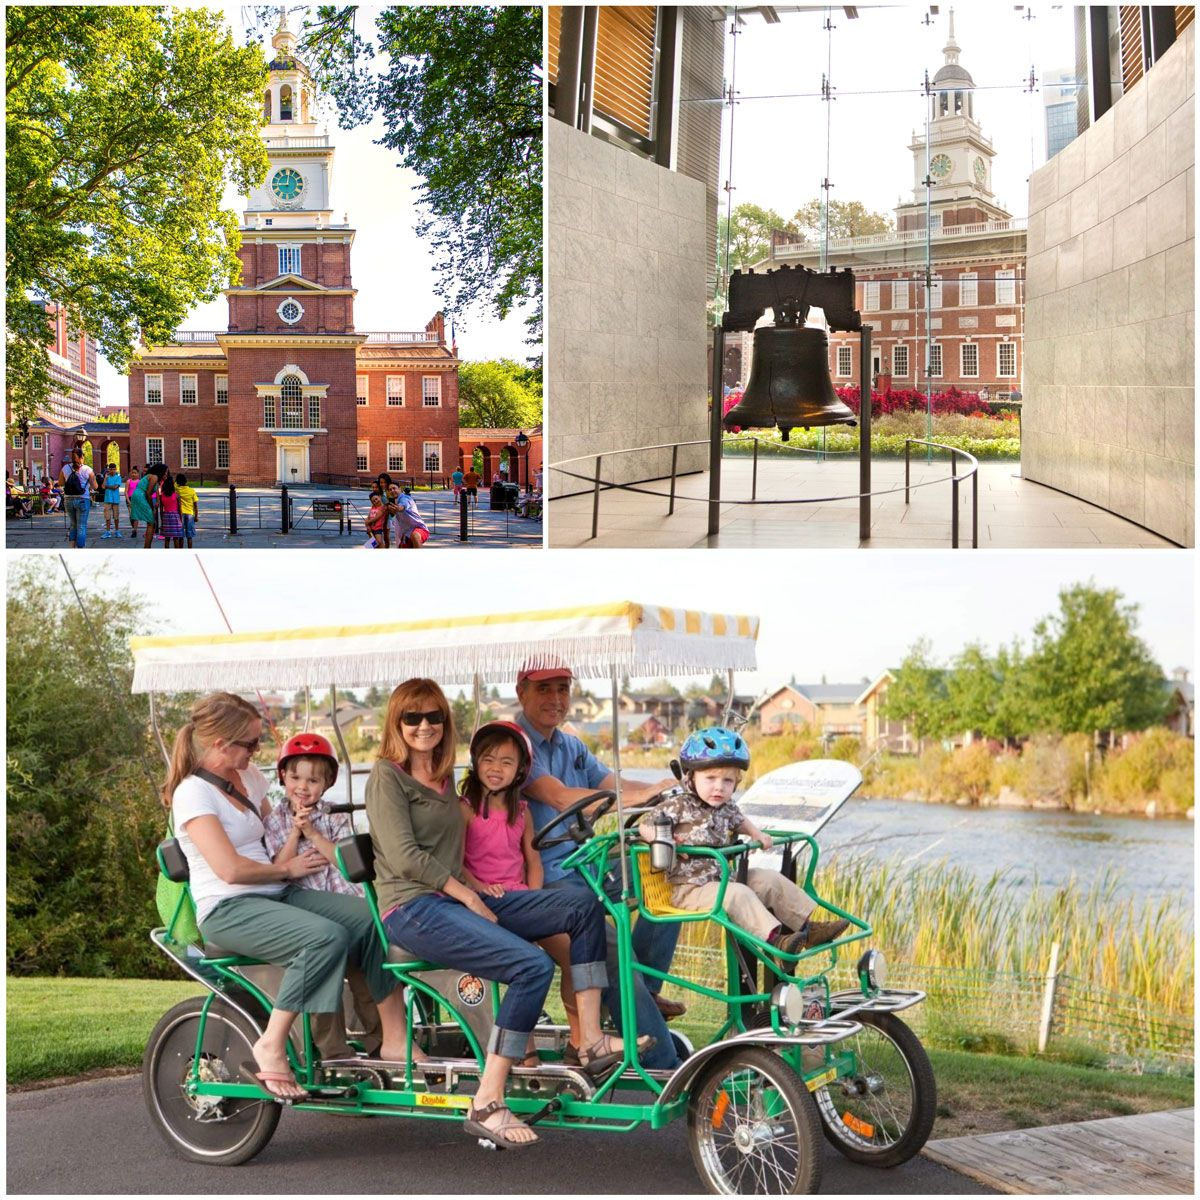 Liberty Hall in Philadelphia, the Liberty Bell, and Family on a Pedal Tour of Philly